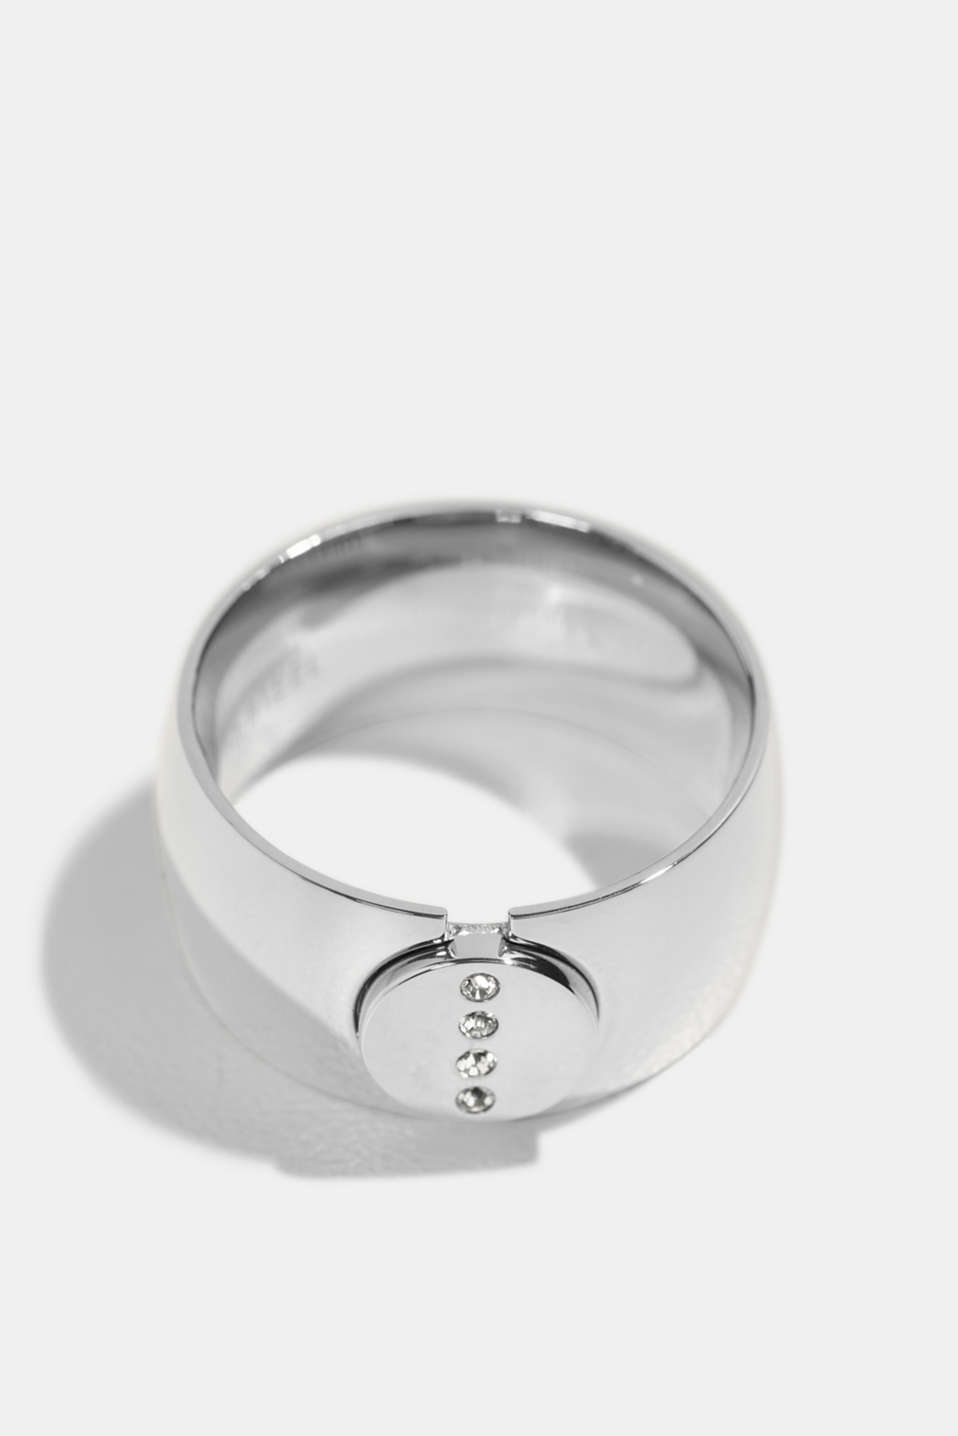 Esprit - Stainless-steel ring trimmed with zirconia